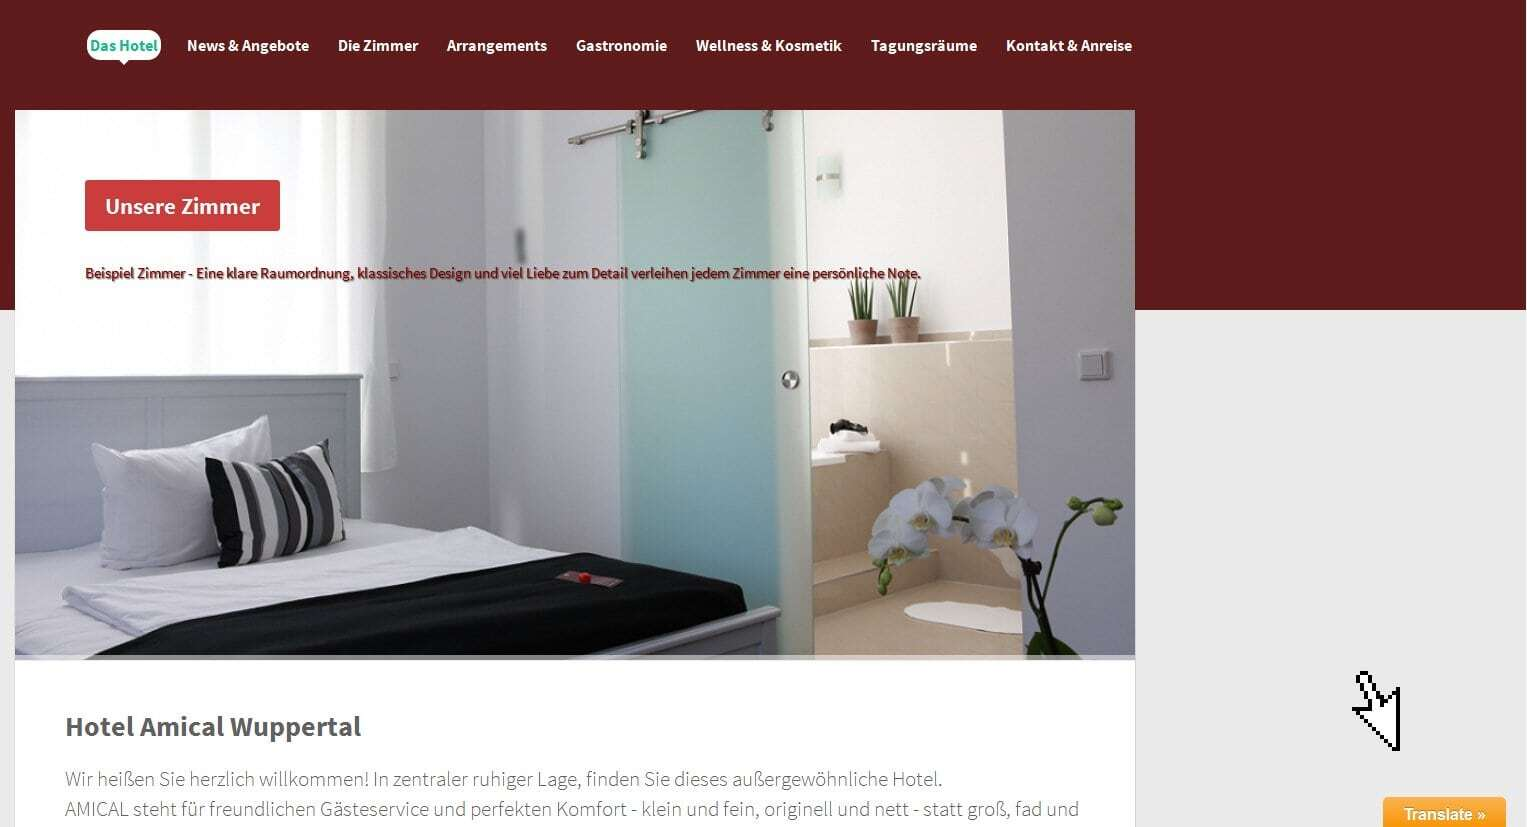 Mehrsprachigkeit mit polylang google language translator for Hotel amical wuppertal